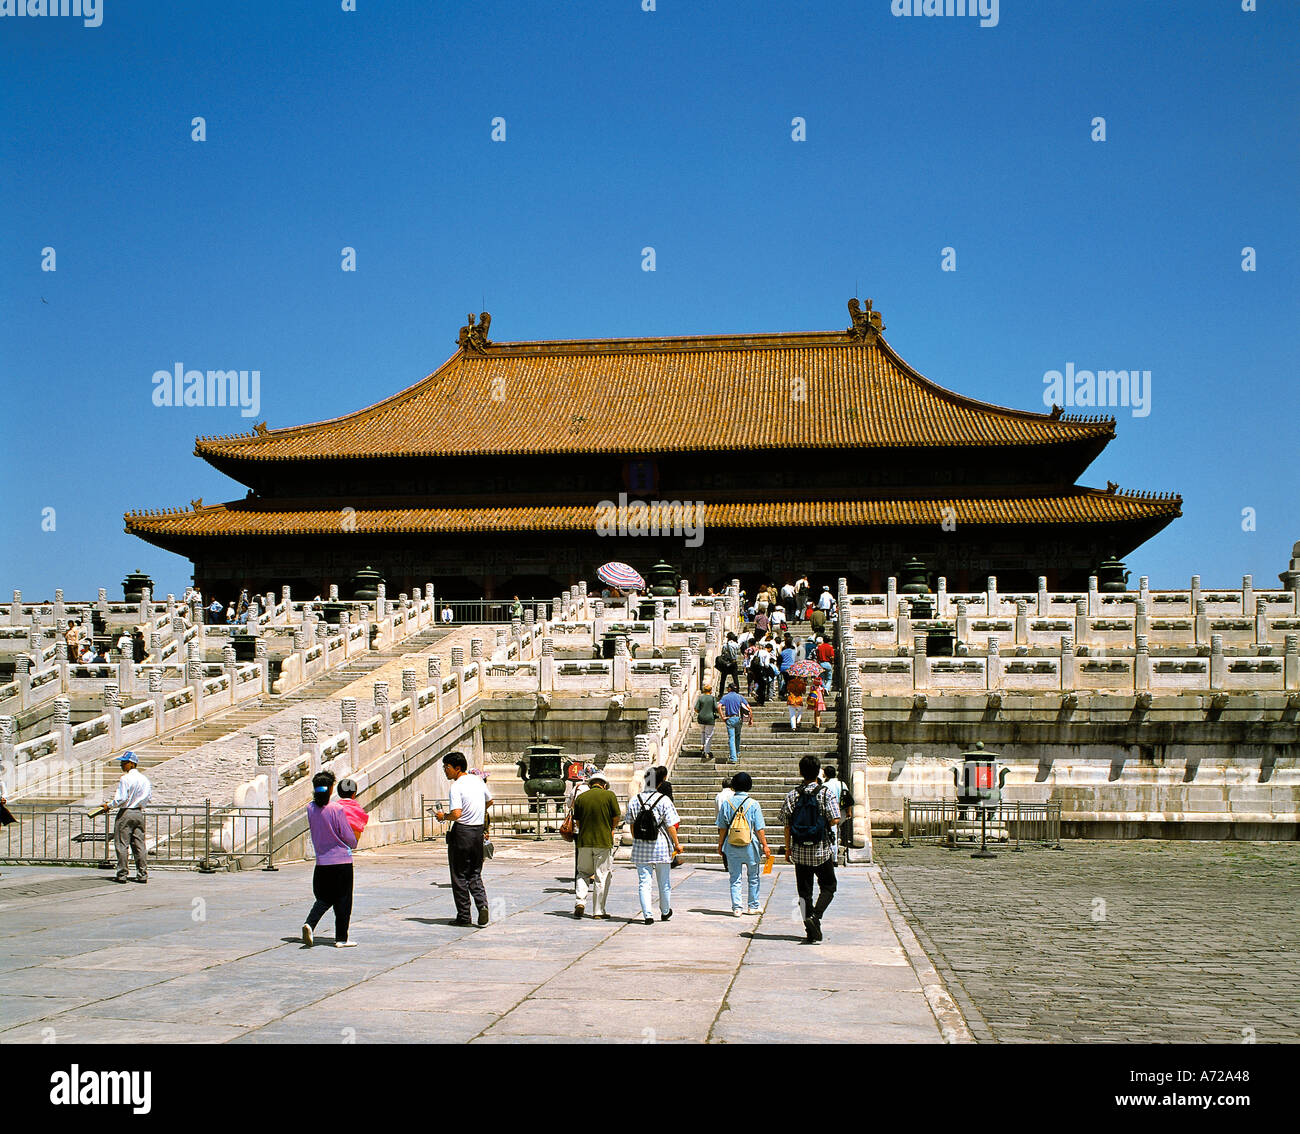 Hall of Supreme Harmony Imperial Palace in the Forbidden City Beijing China Stock Photo